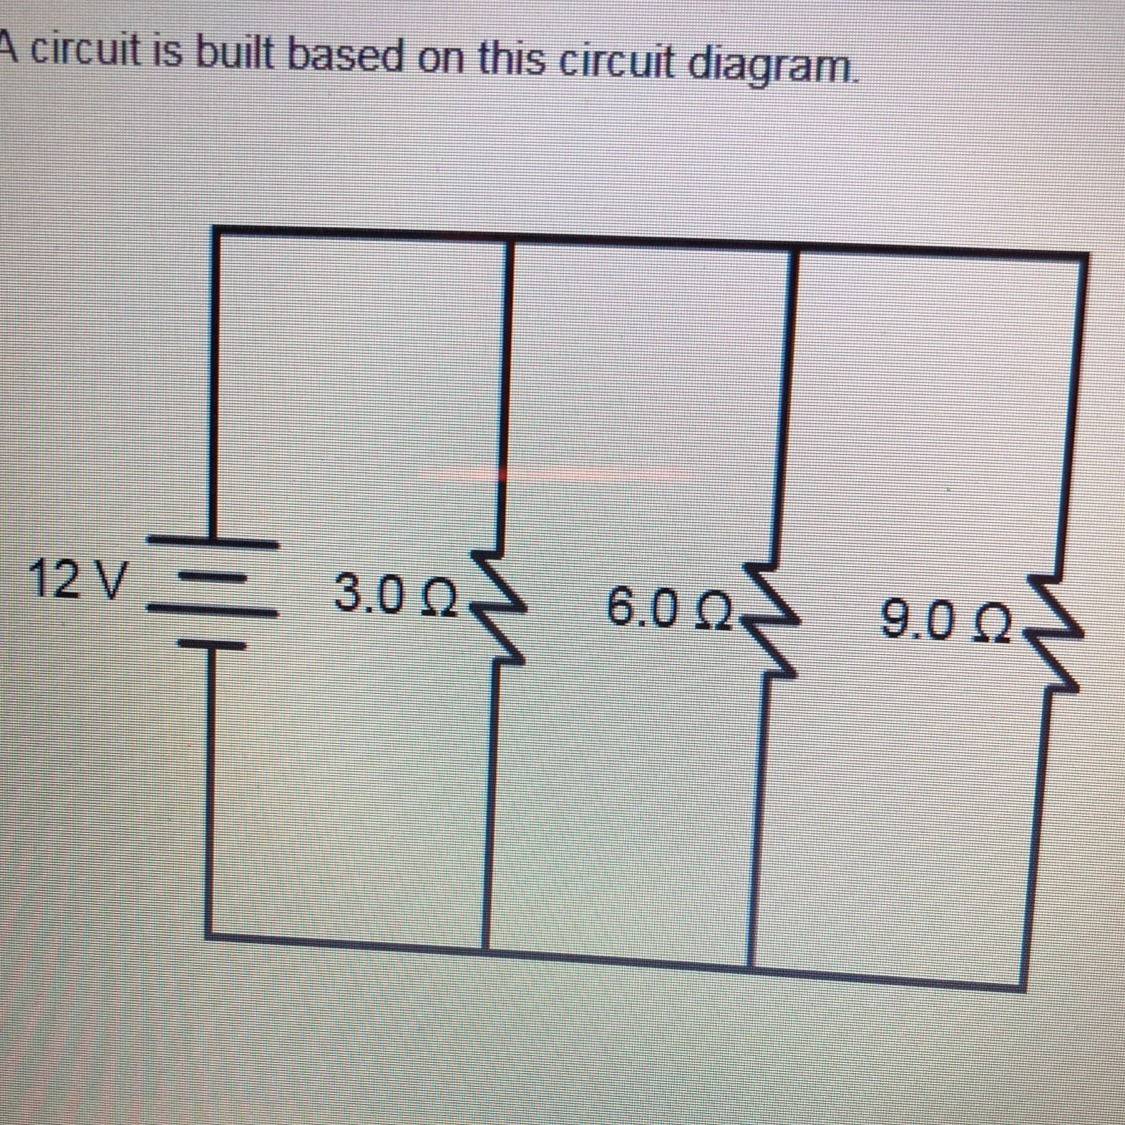 What Is The Equivalent Resistance In This Part Of The Circuit